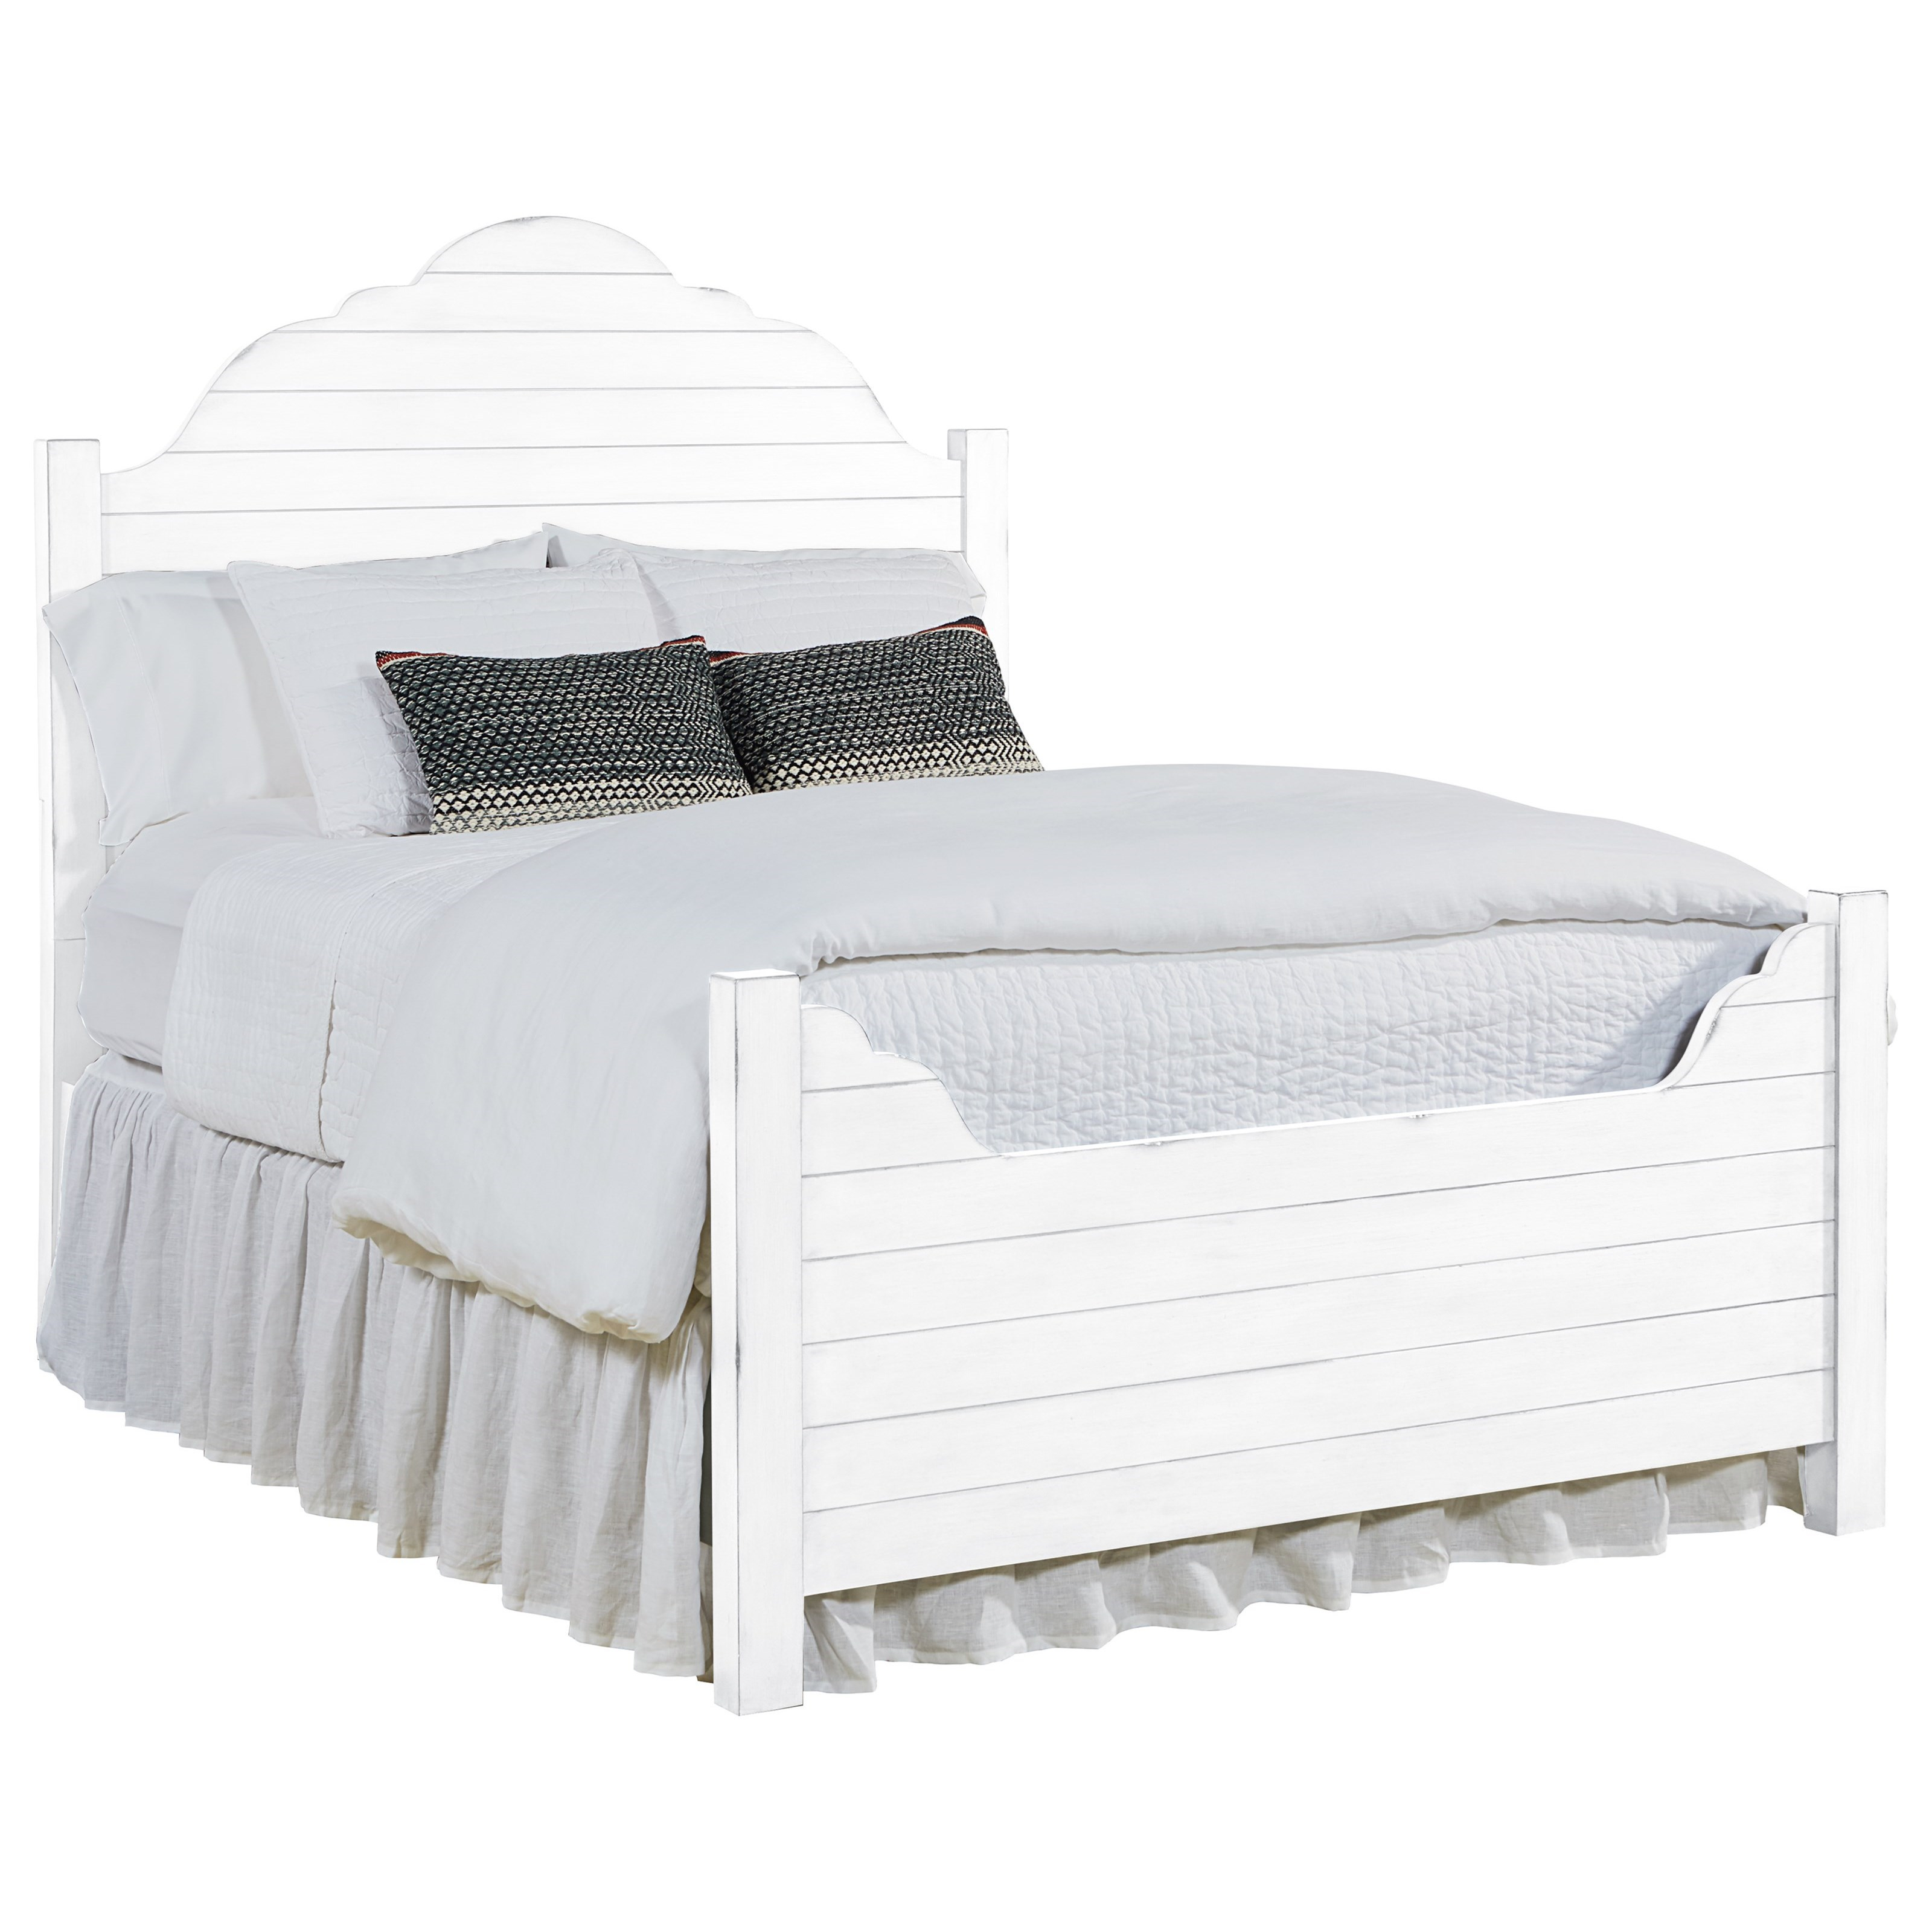 Shiplap Queen Headboard And Footboard